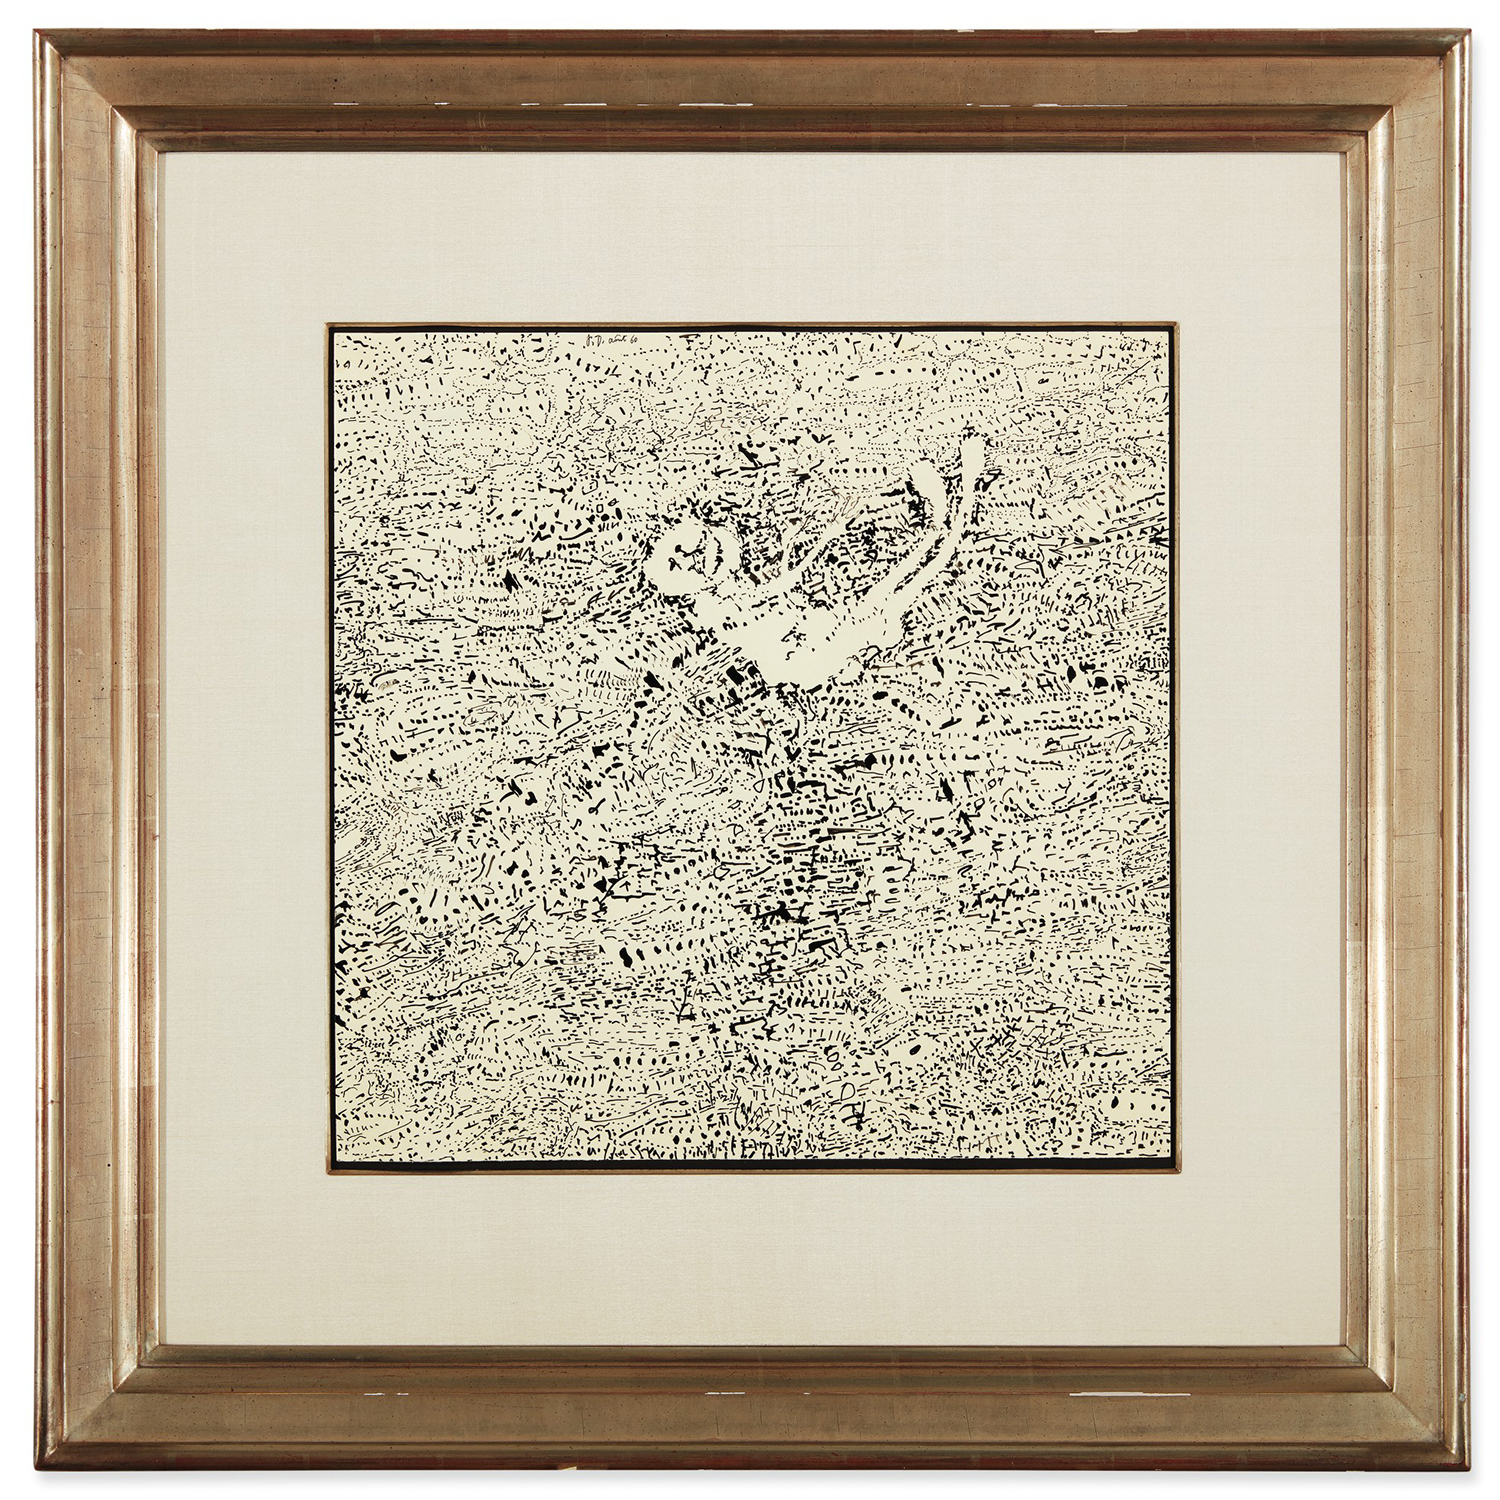 framed image of Jean Dubuffet's Paysage Couche